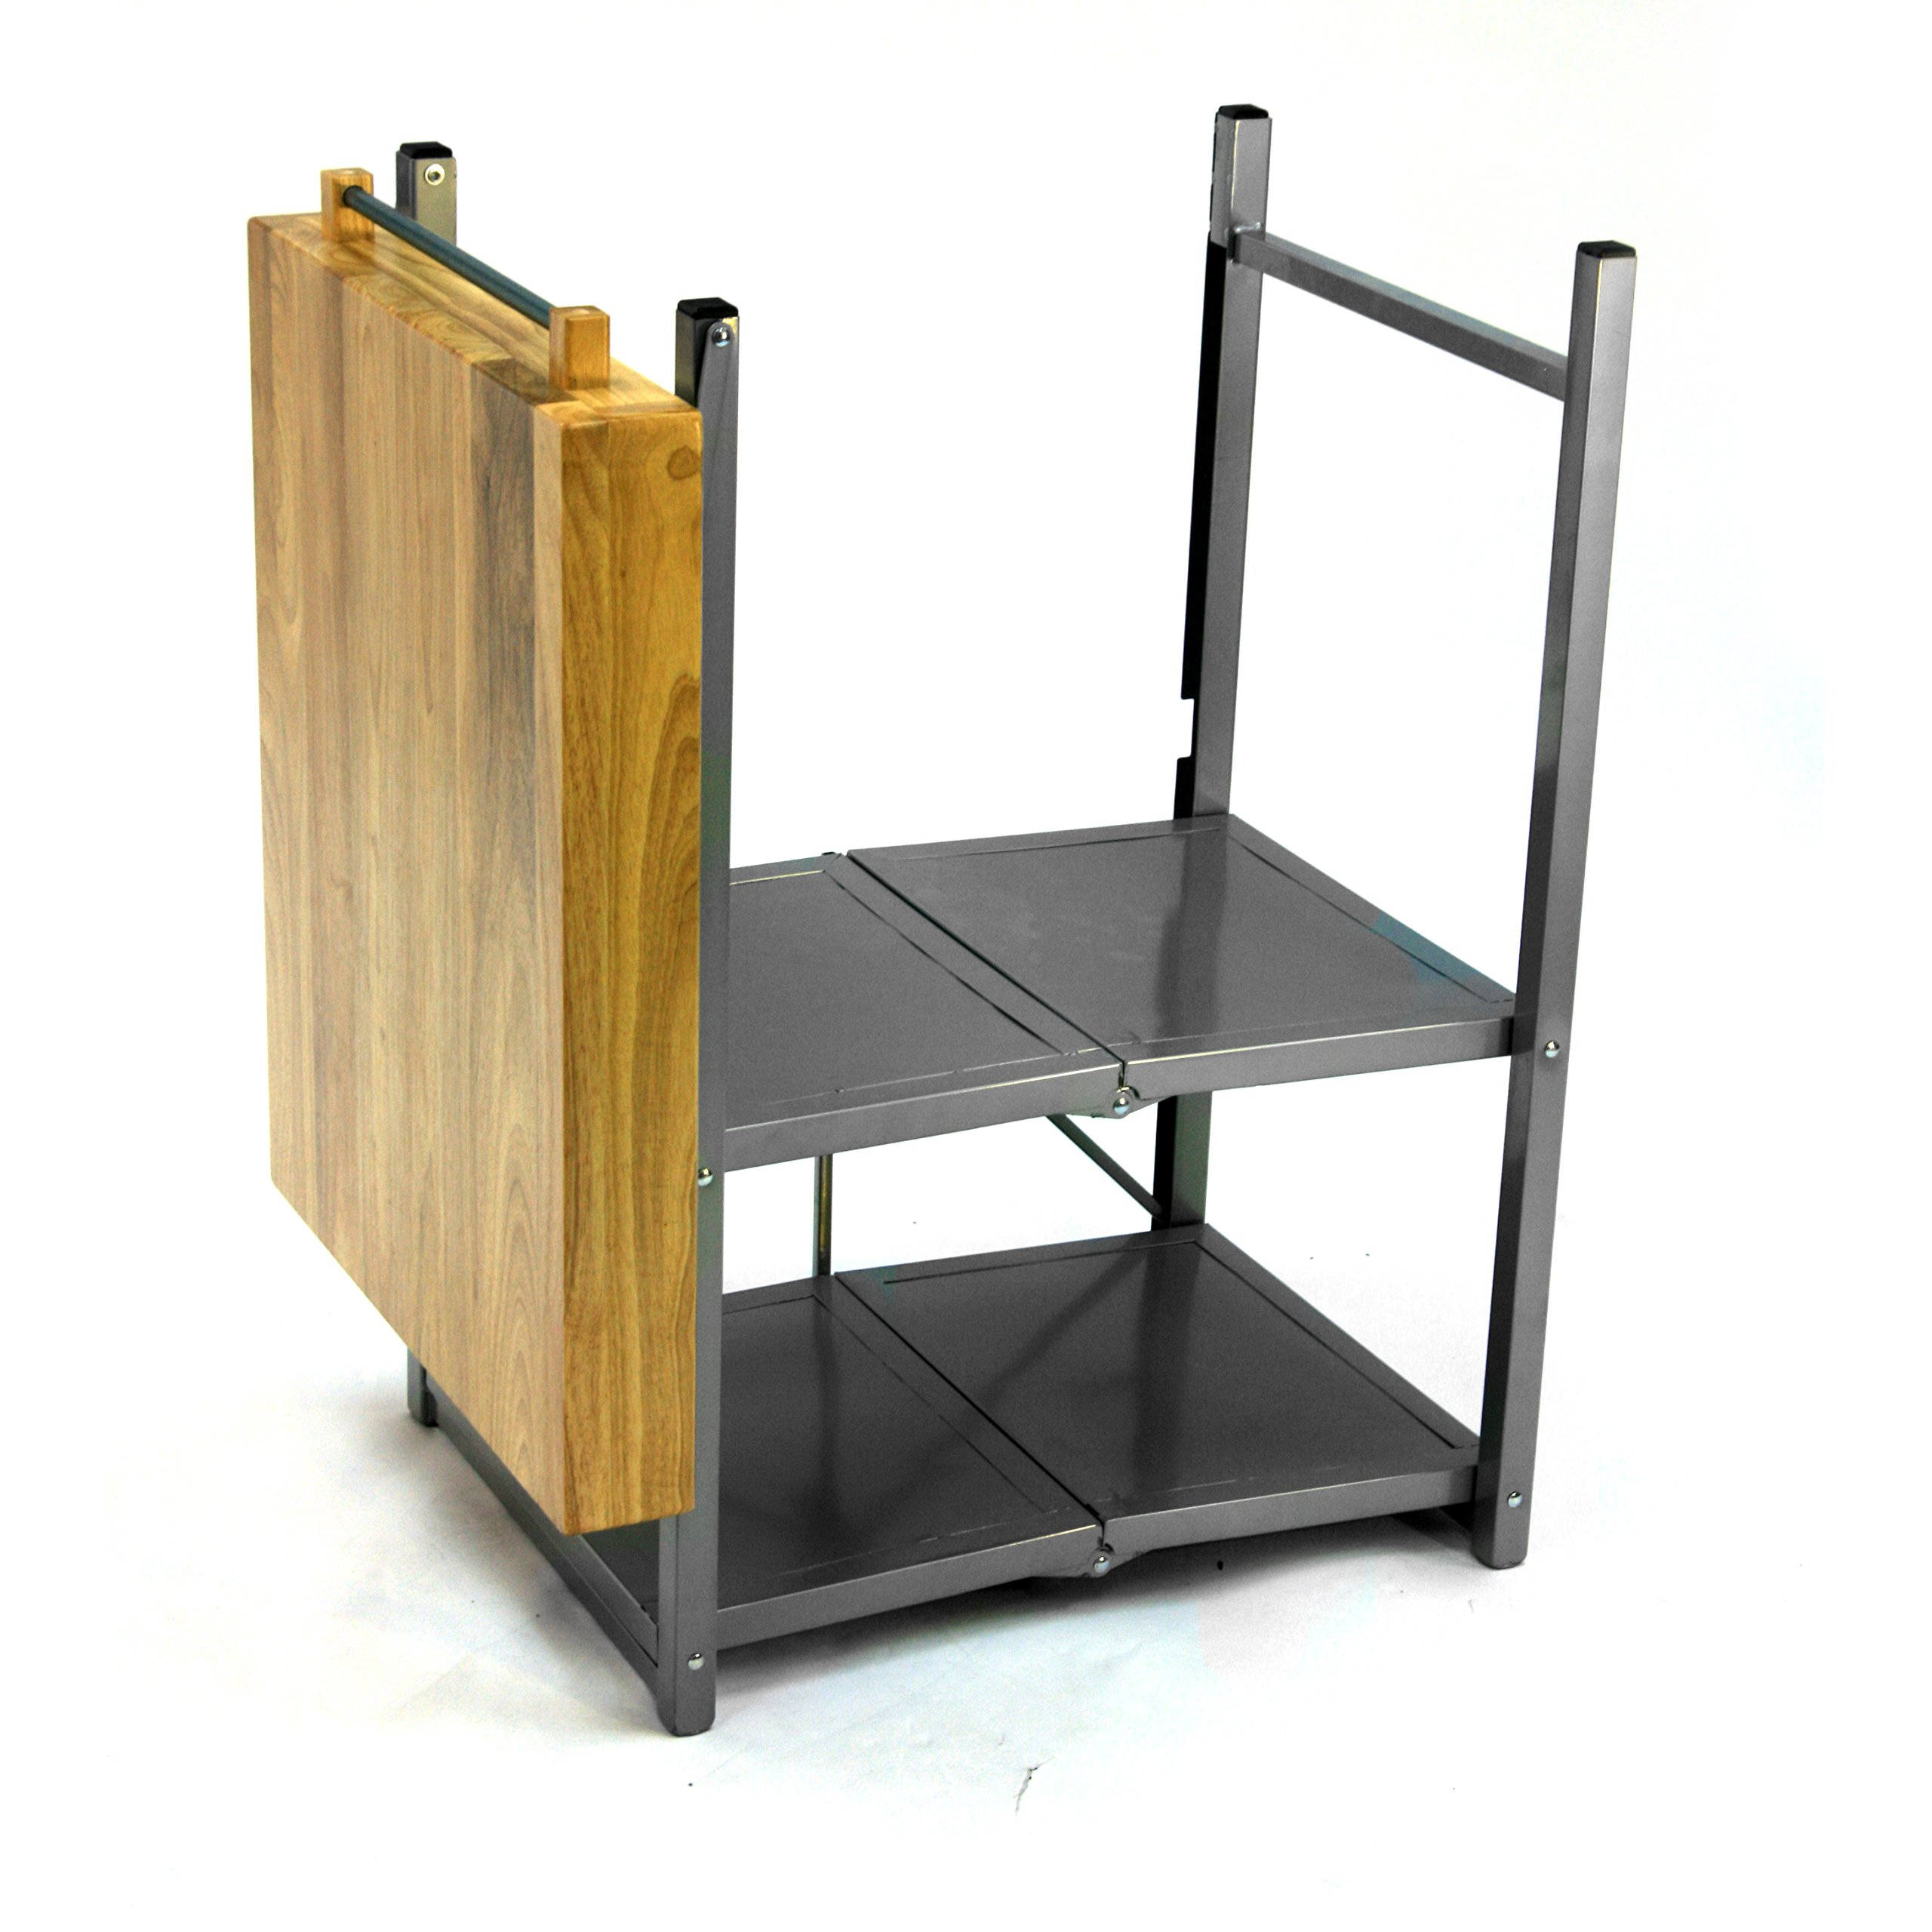 Origami Foldable Rolling Kitchen Island Cart, Food Serving Cart, 3-Tier Storage Shelf with Wood Top, Microwave Stand, Heavy Duty, Silver by Origami (Image #4)